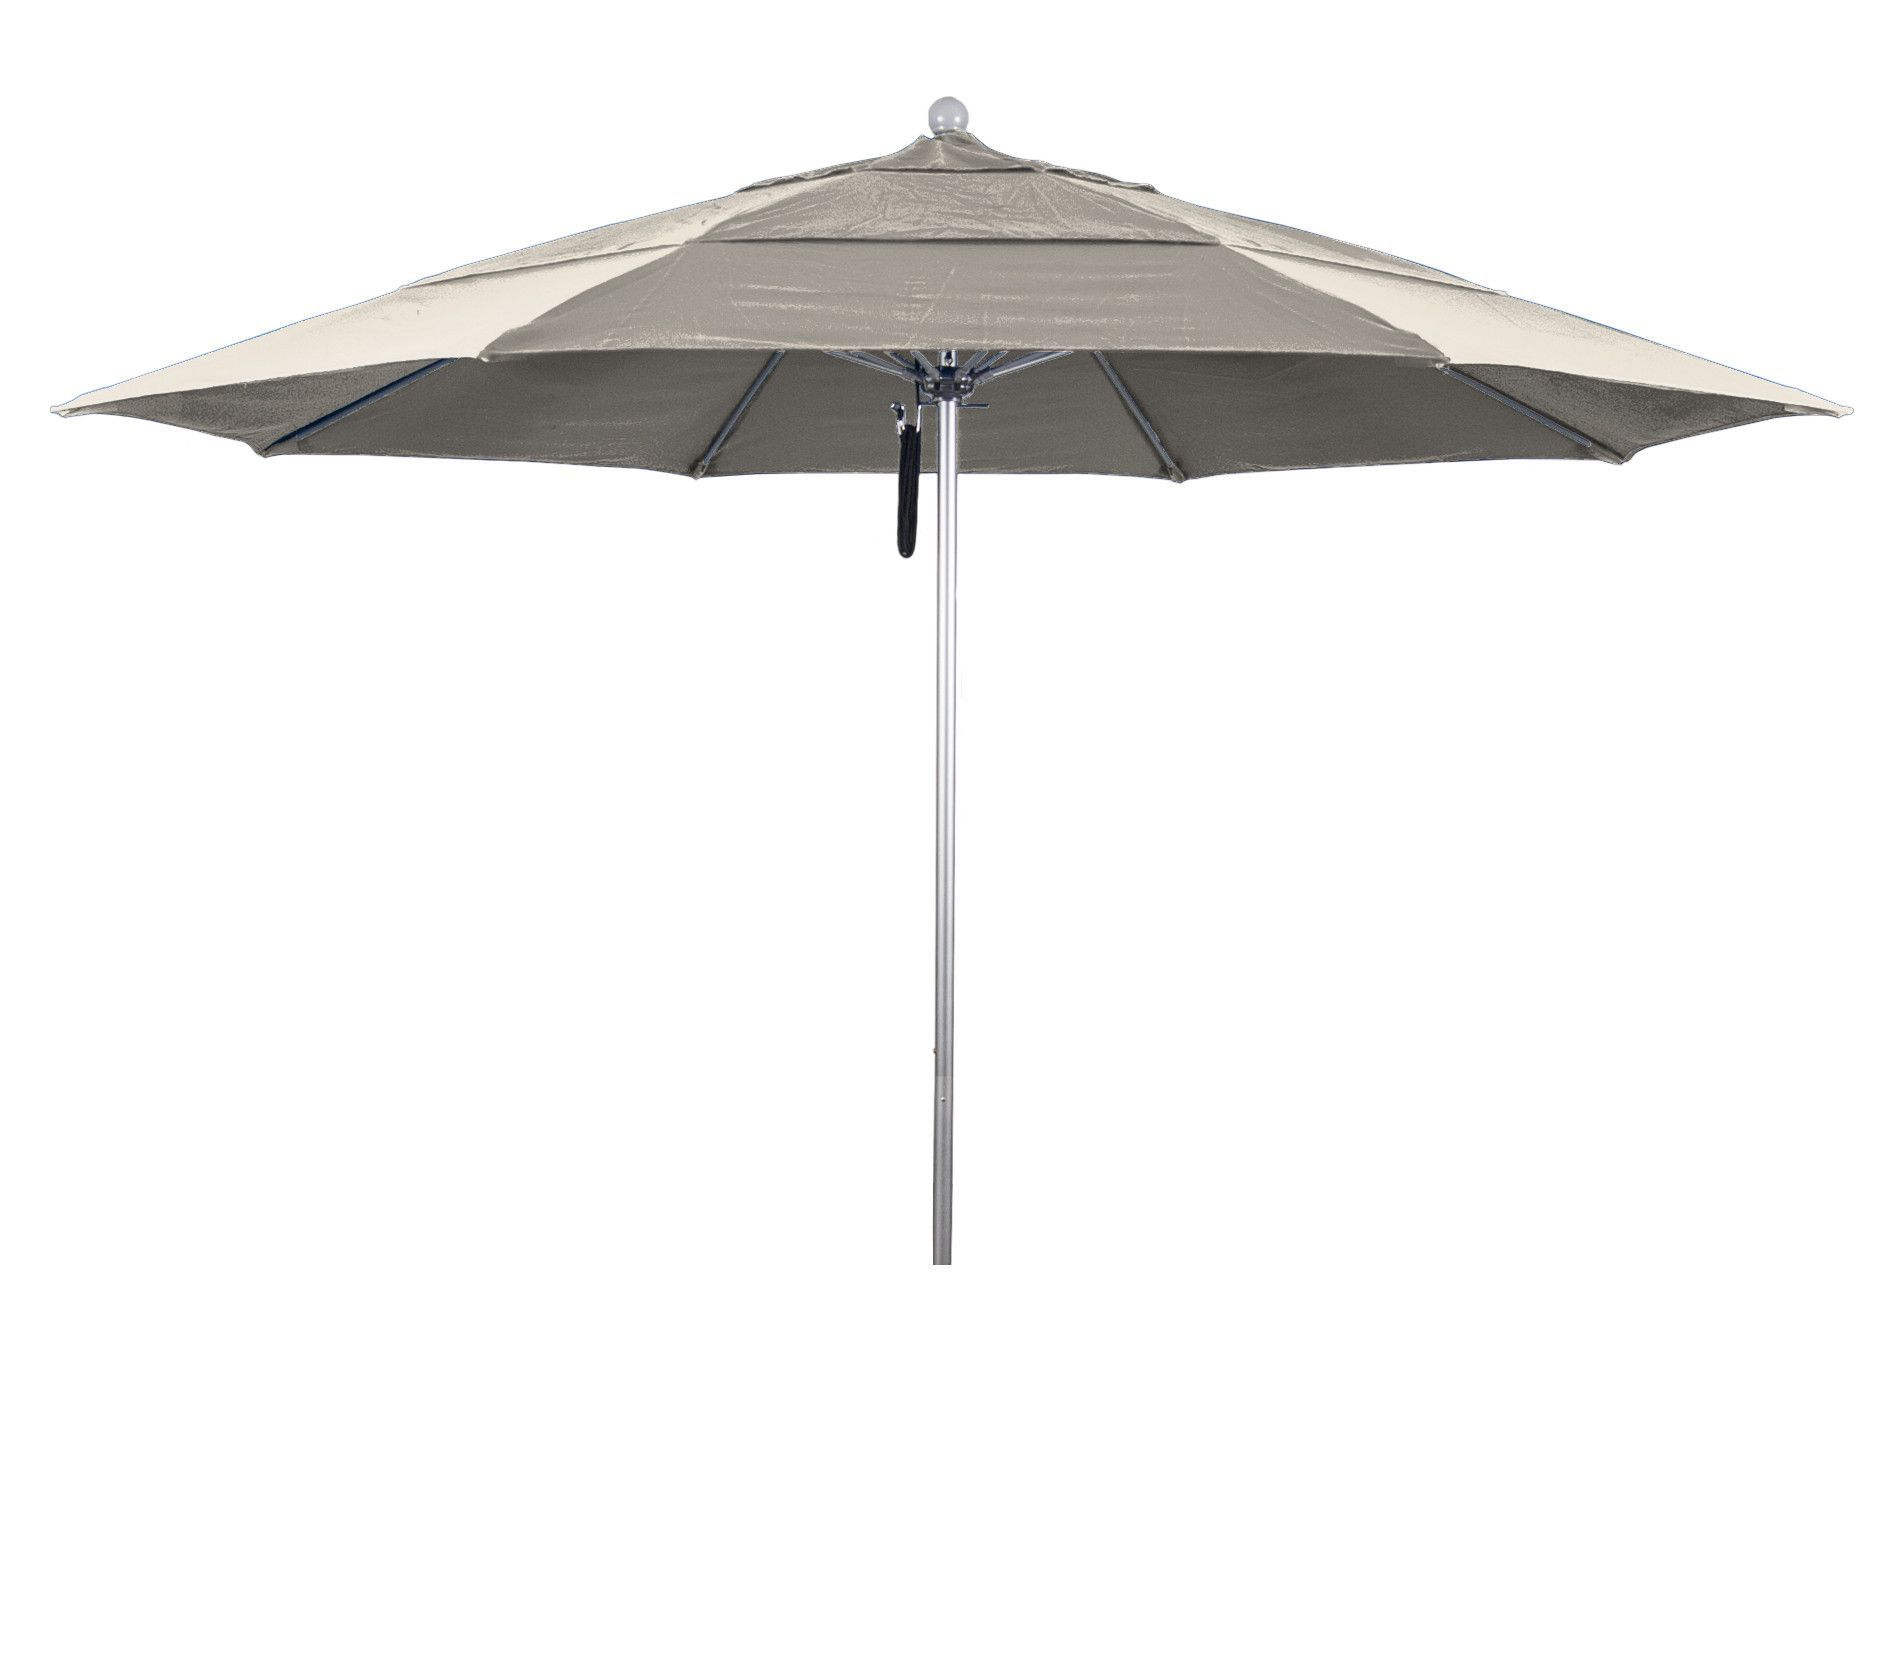 Eclipse Collection 11' Fiberglass Market Umbrella PO DVent Silver Anodized/Sunbrella/Canvas